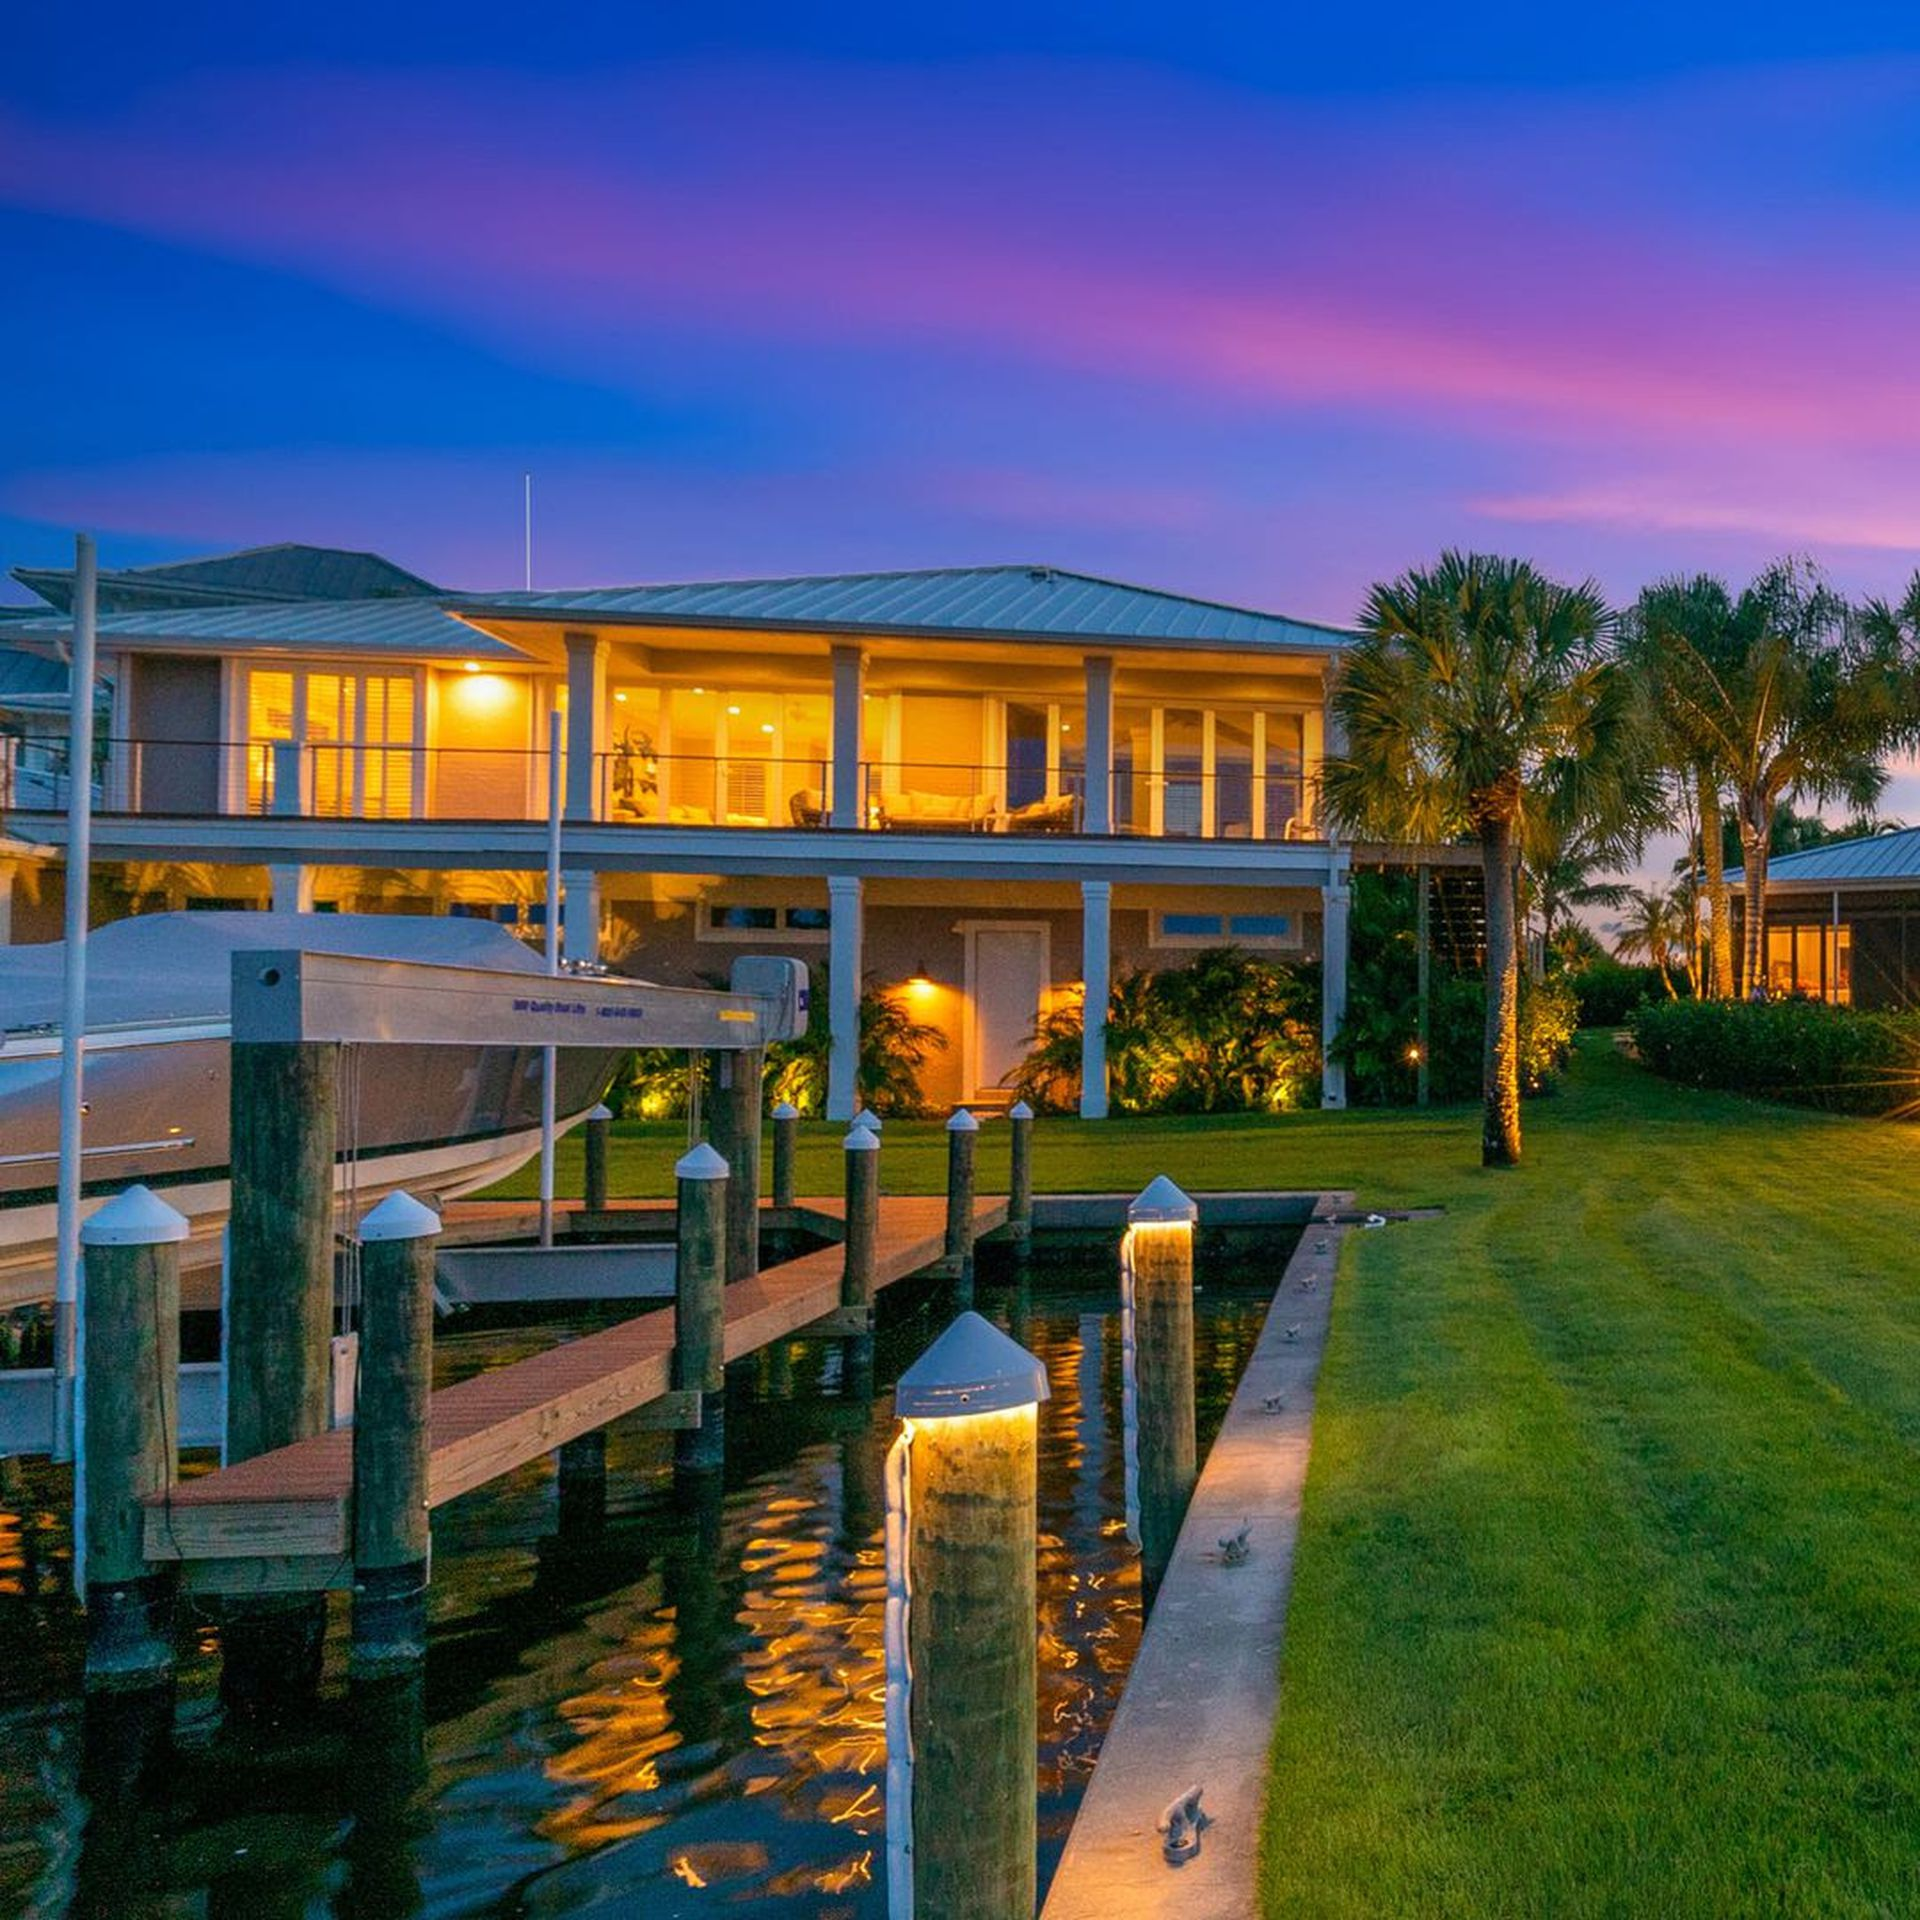 A photo of the front yard of a house listed for sale in Casey Key.